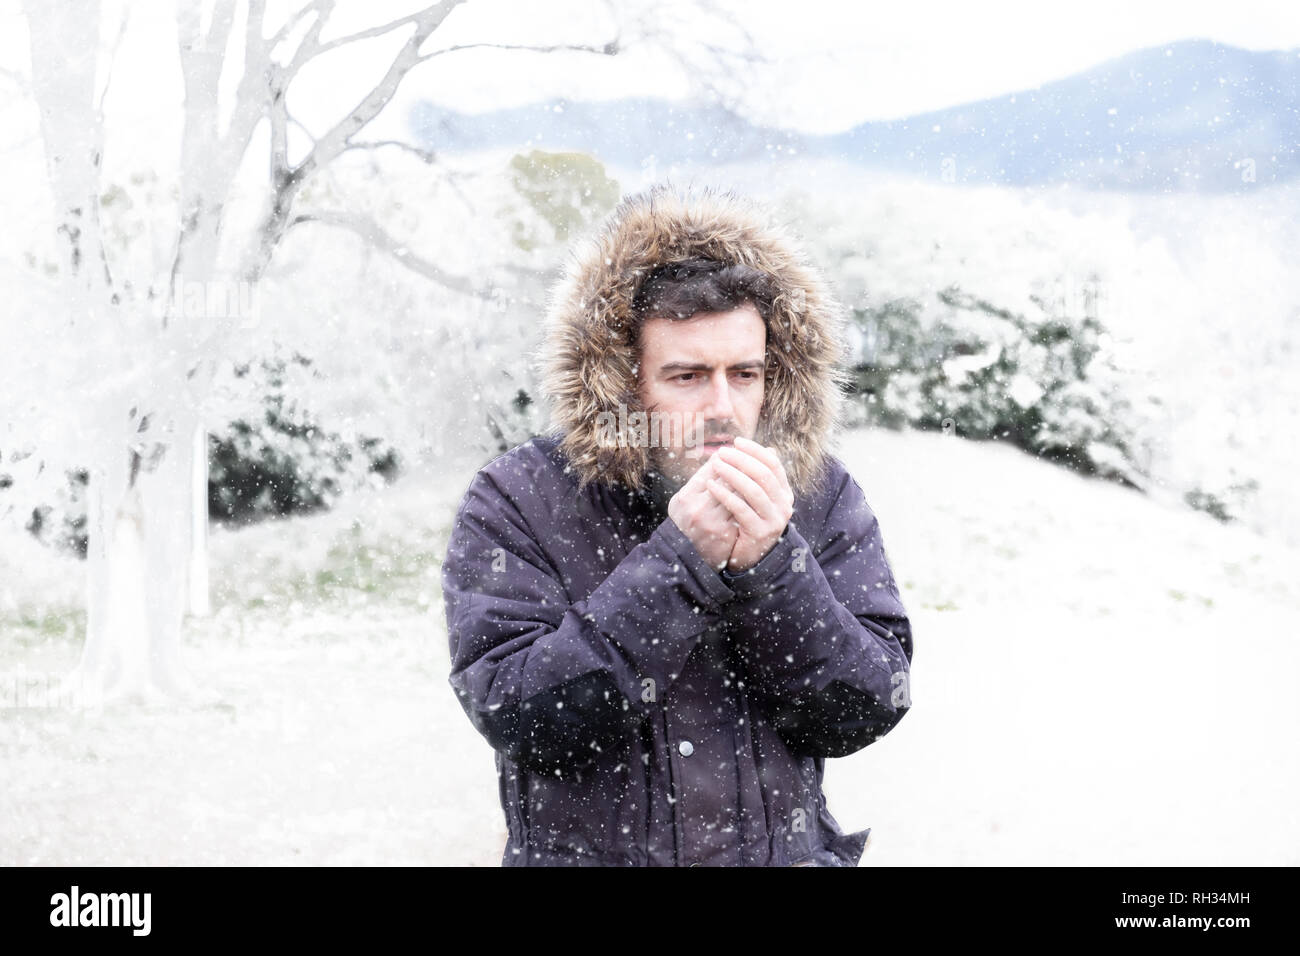 Man in winter season and snowy day - Stock Image